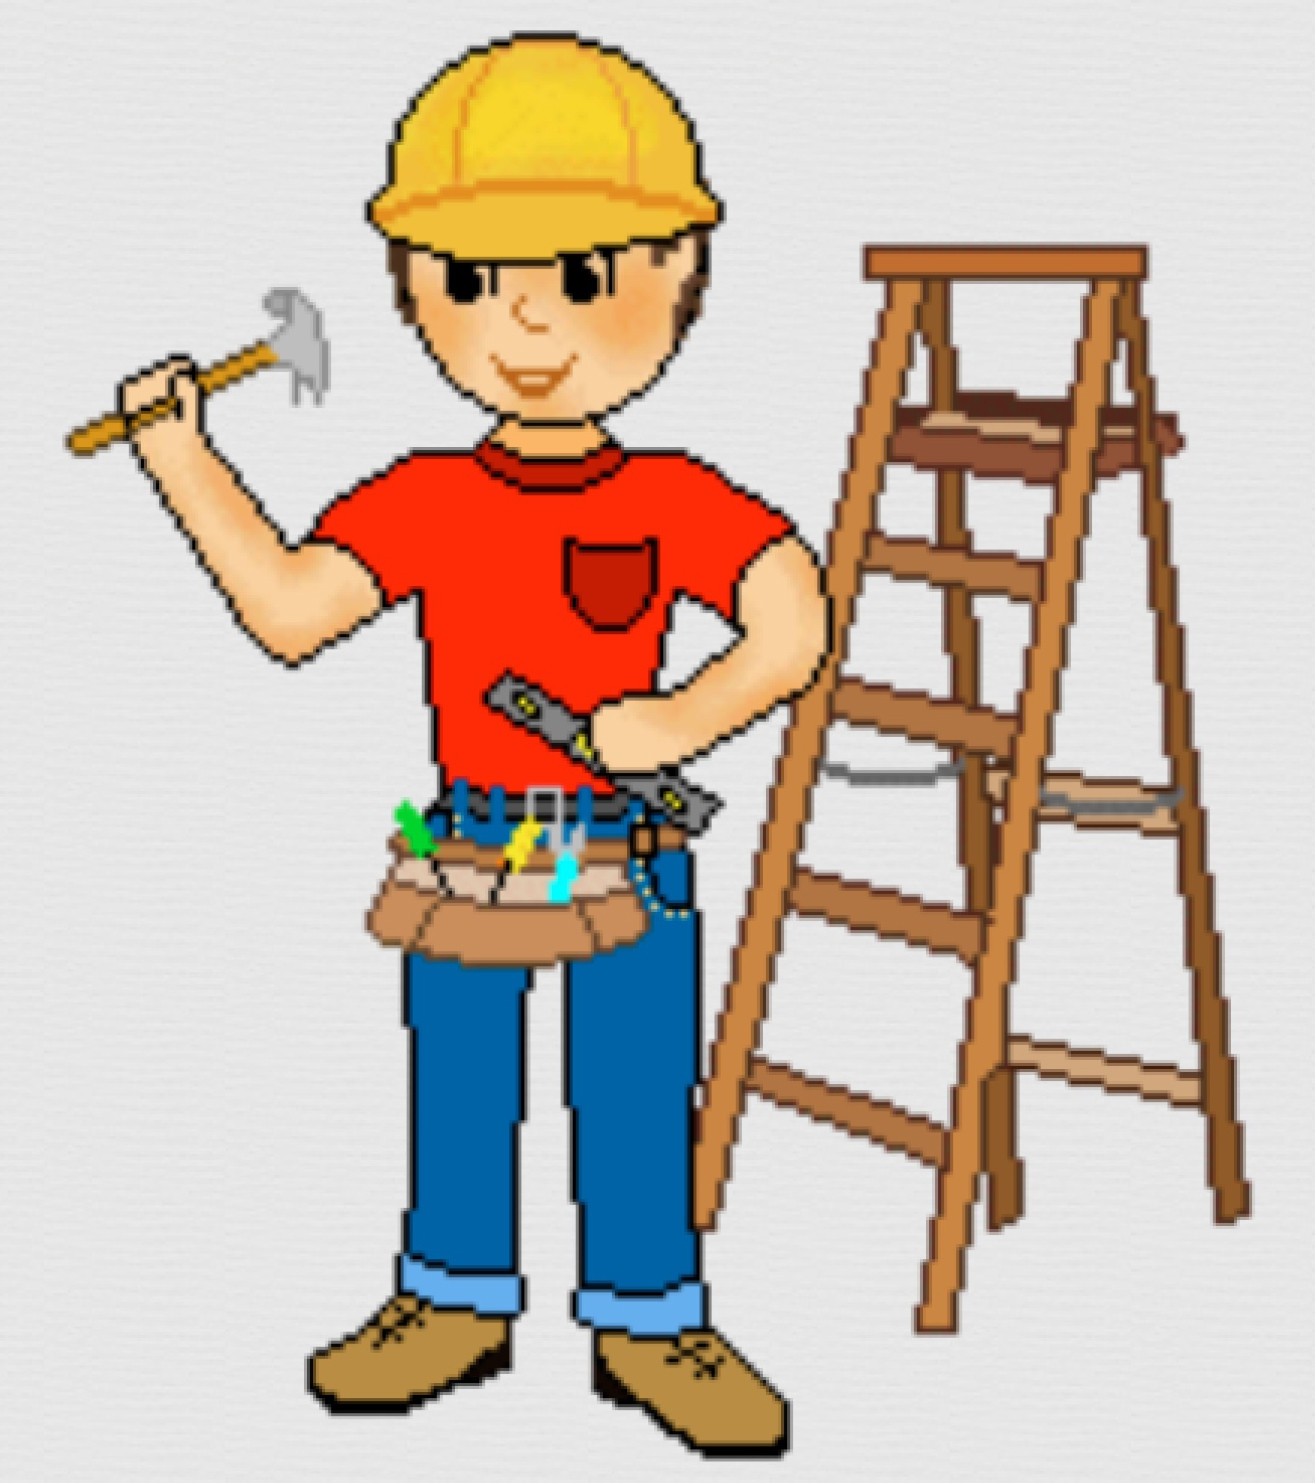 jpg transparent Free workers pictures download. Labor clipart construction crew.